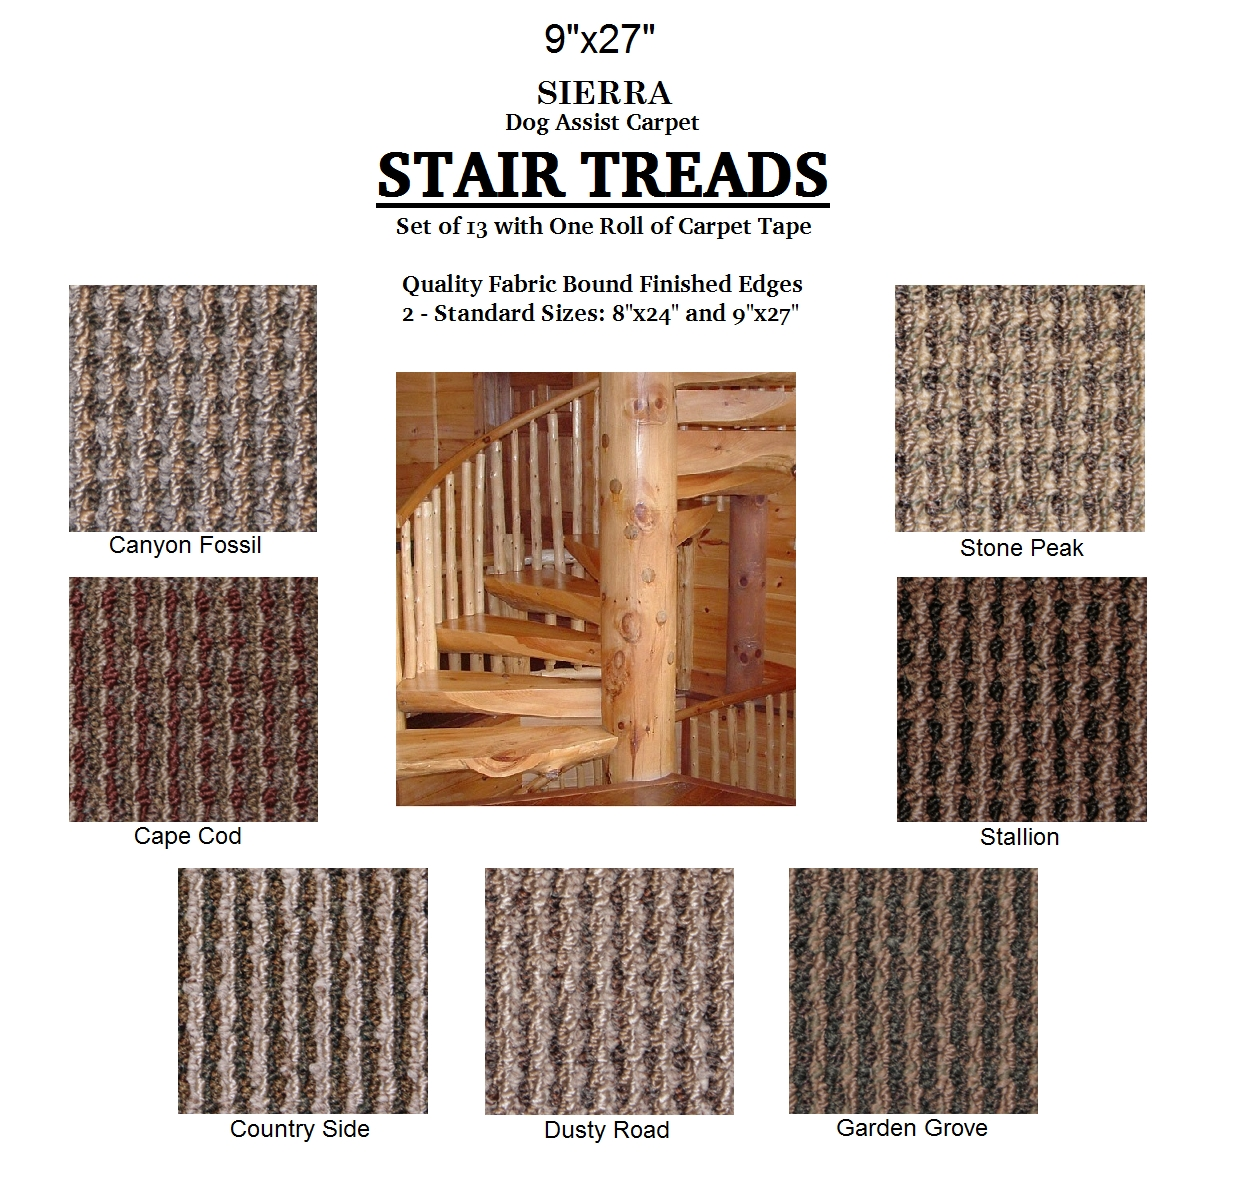 Huntington Dog Assist Carpet Stair Treads Regarding Carpet Stair Treads For Dogs (Image 8 of 15)